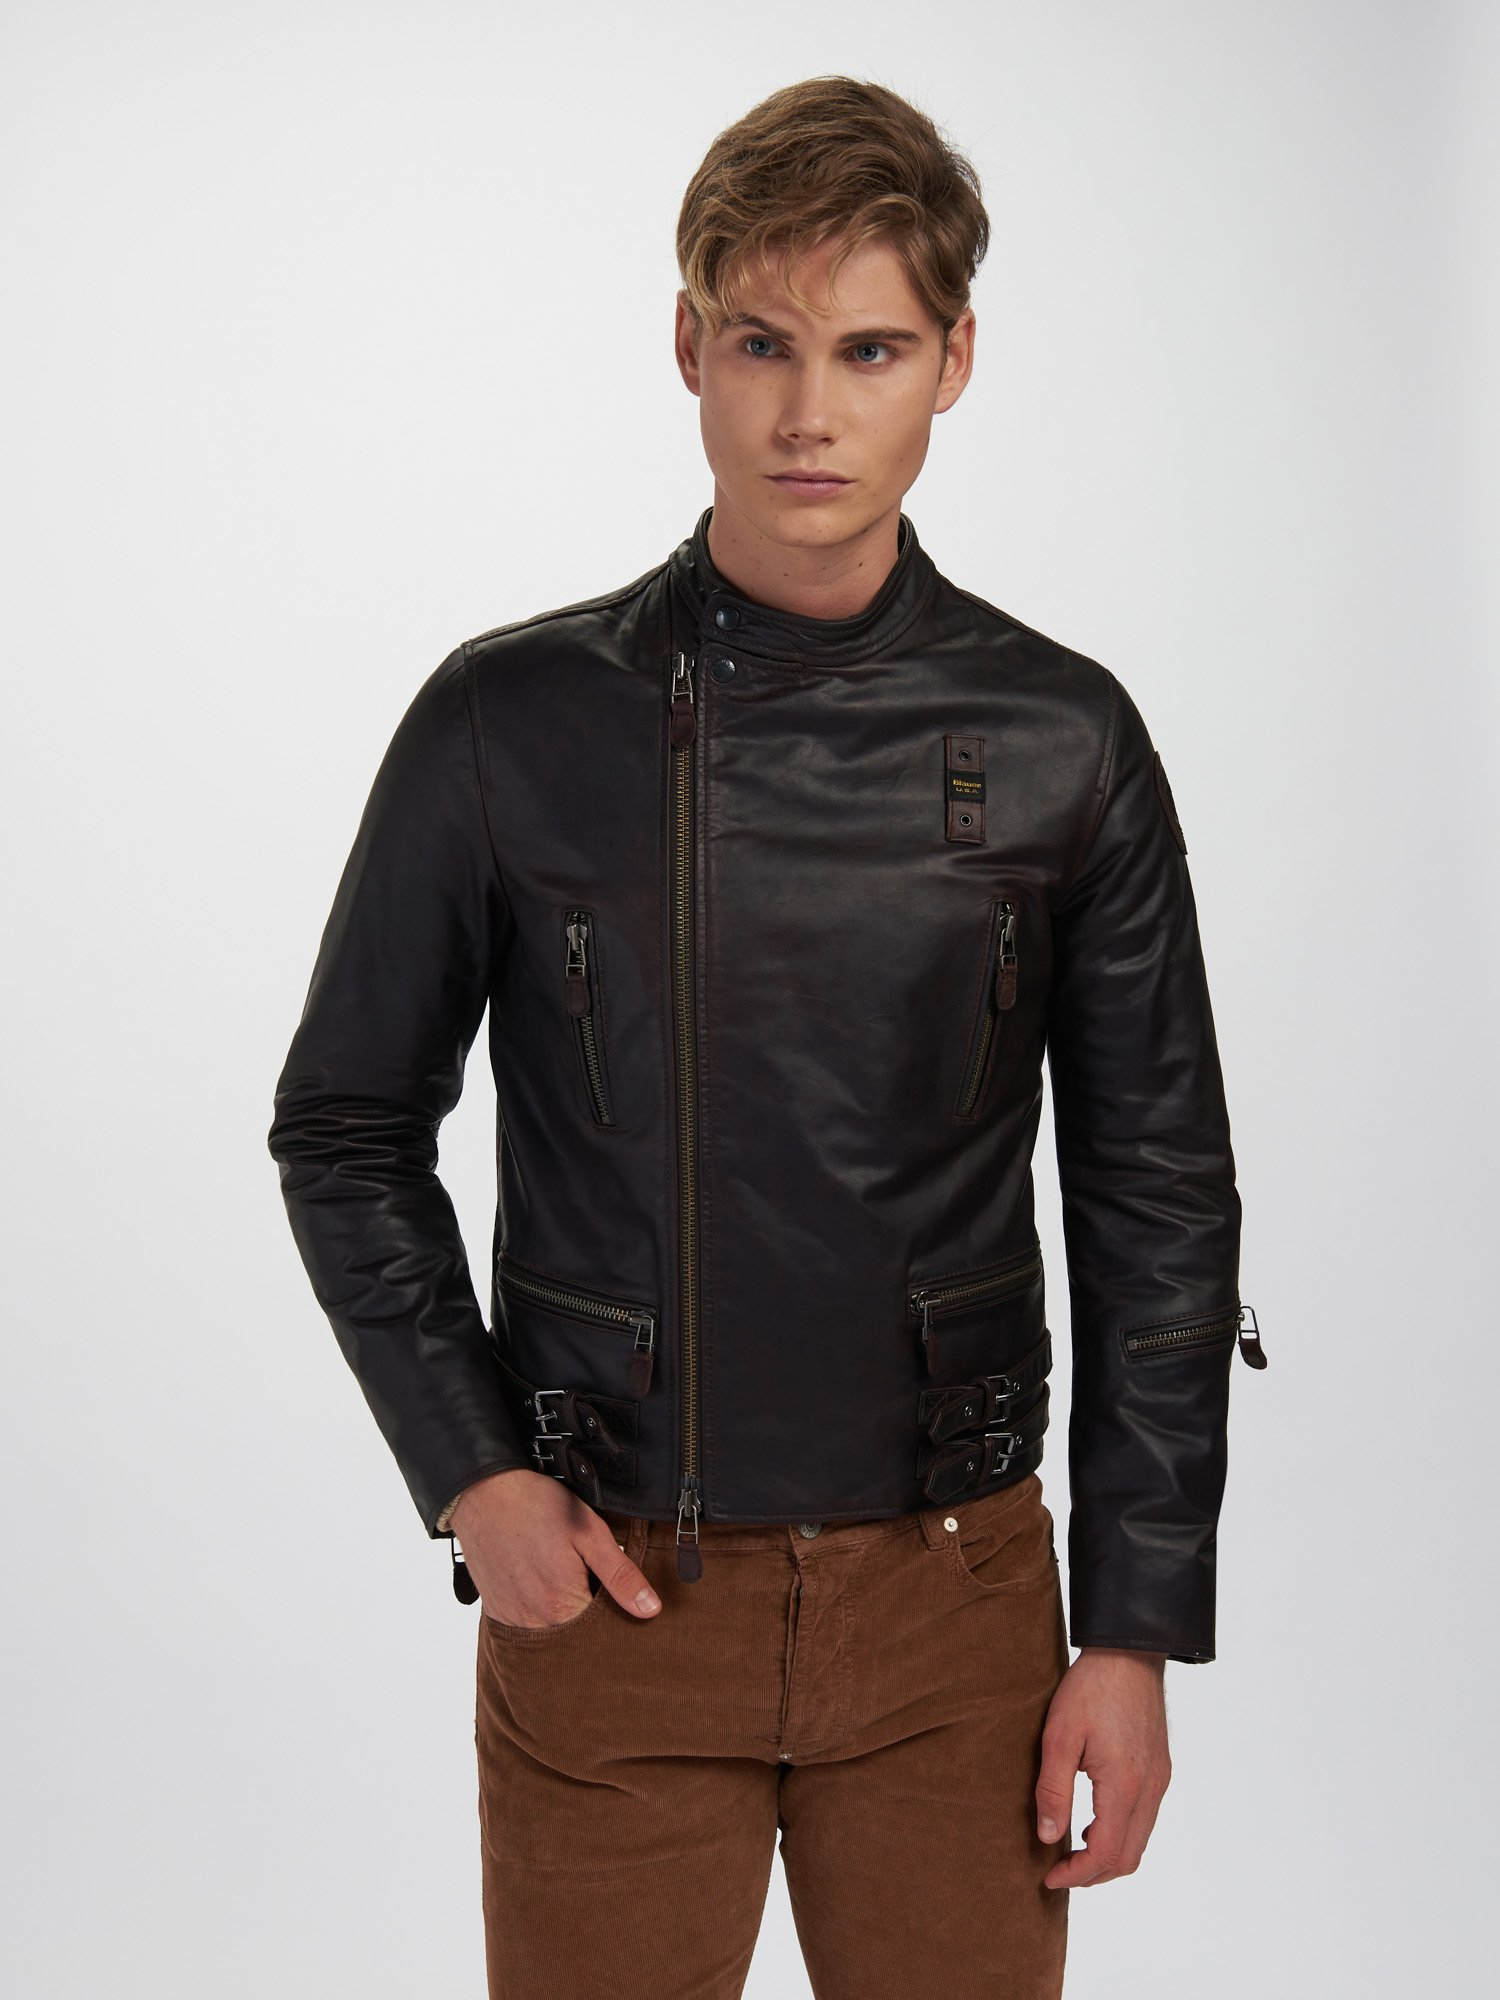 JOSHUA MULTI POCKET LEATHER JACKET - Blauer